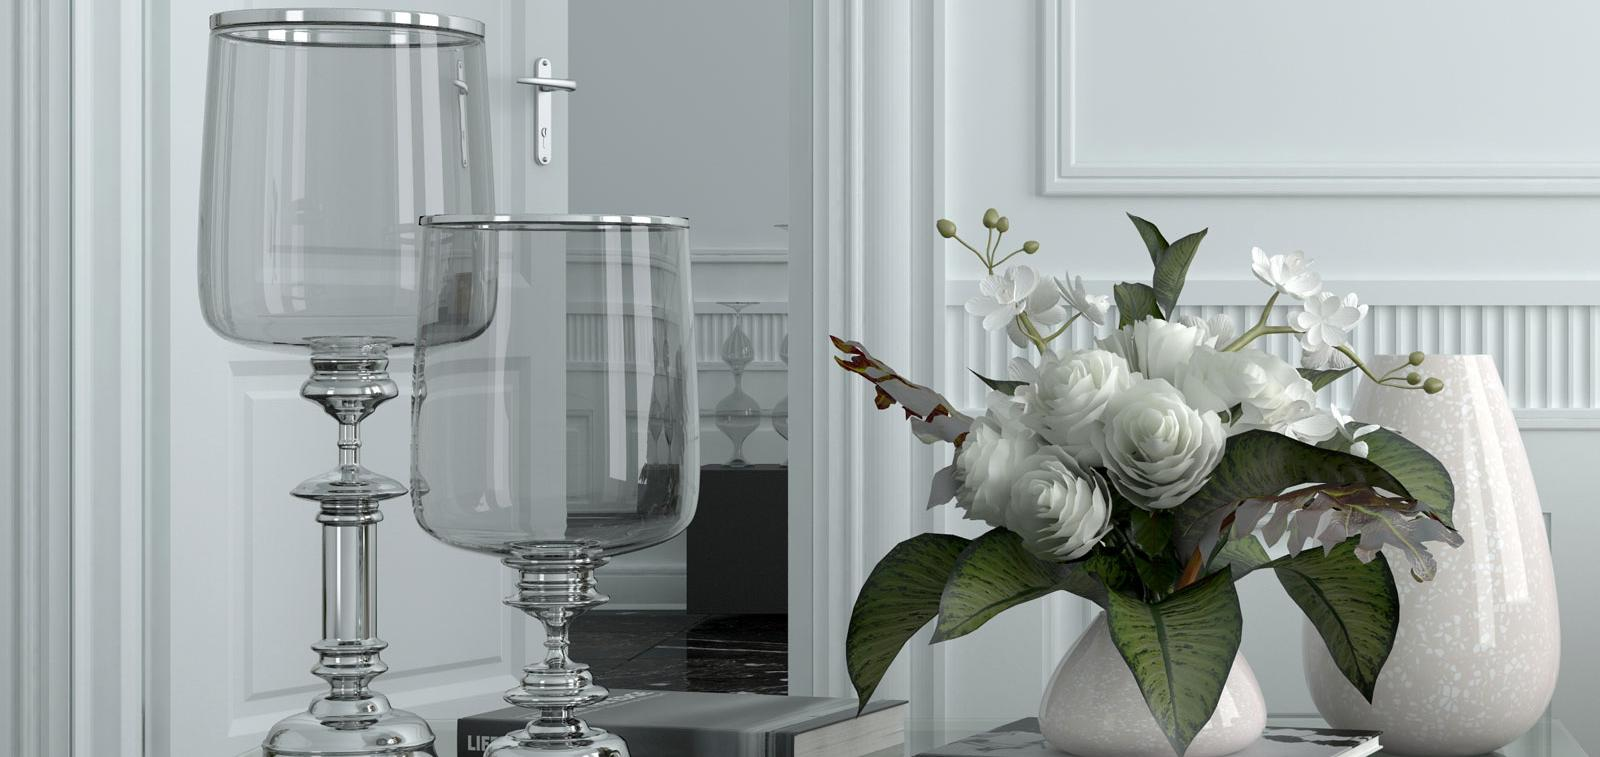 Glasses and flowers on a side table.